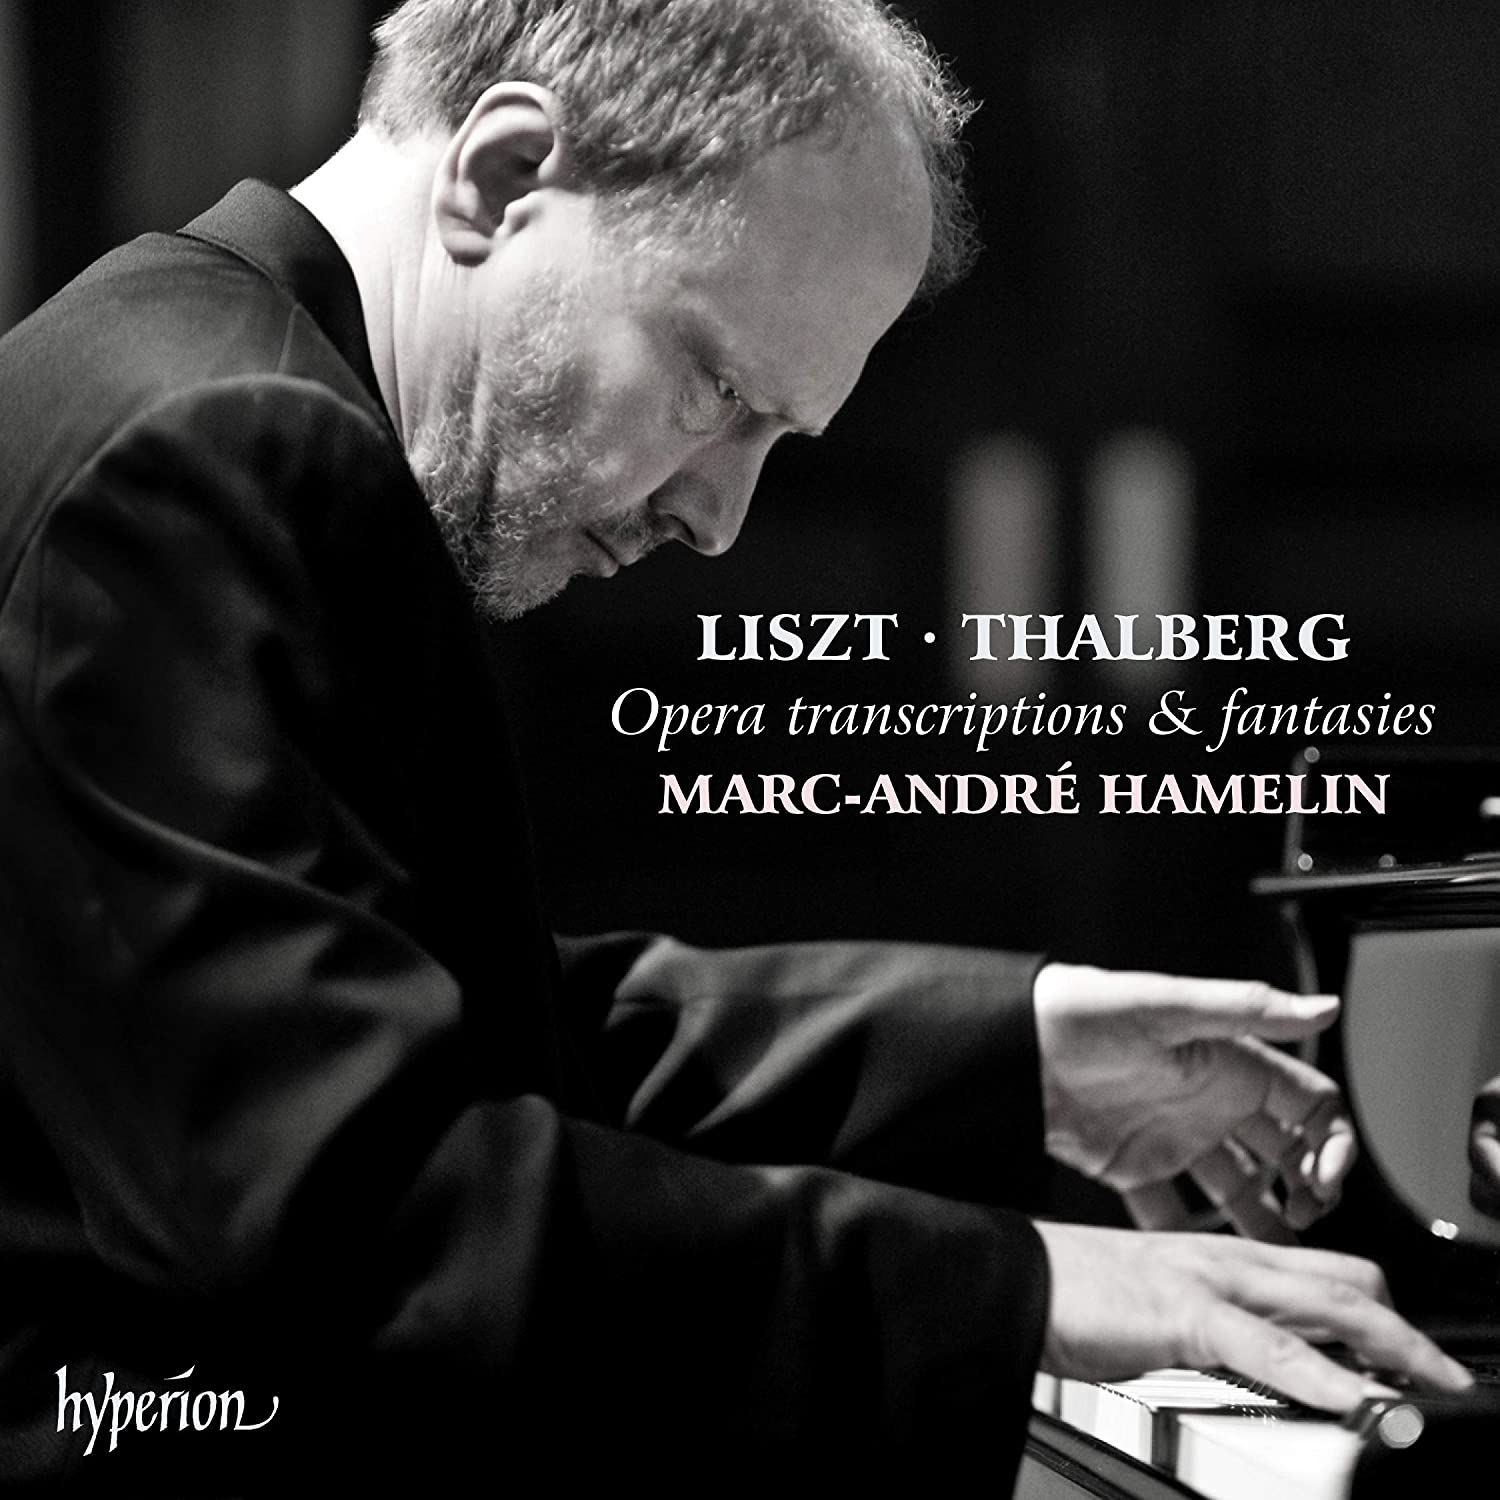 Review of LISZT; THALBERG Opera transciptions and fantasies (Marc-André Hamelin)